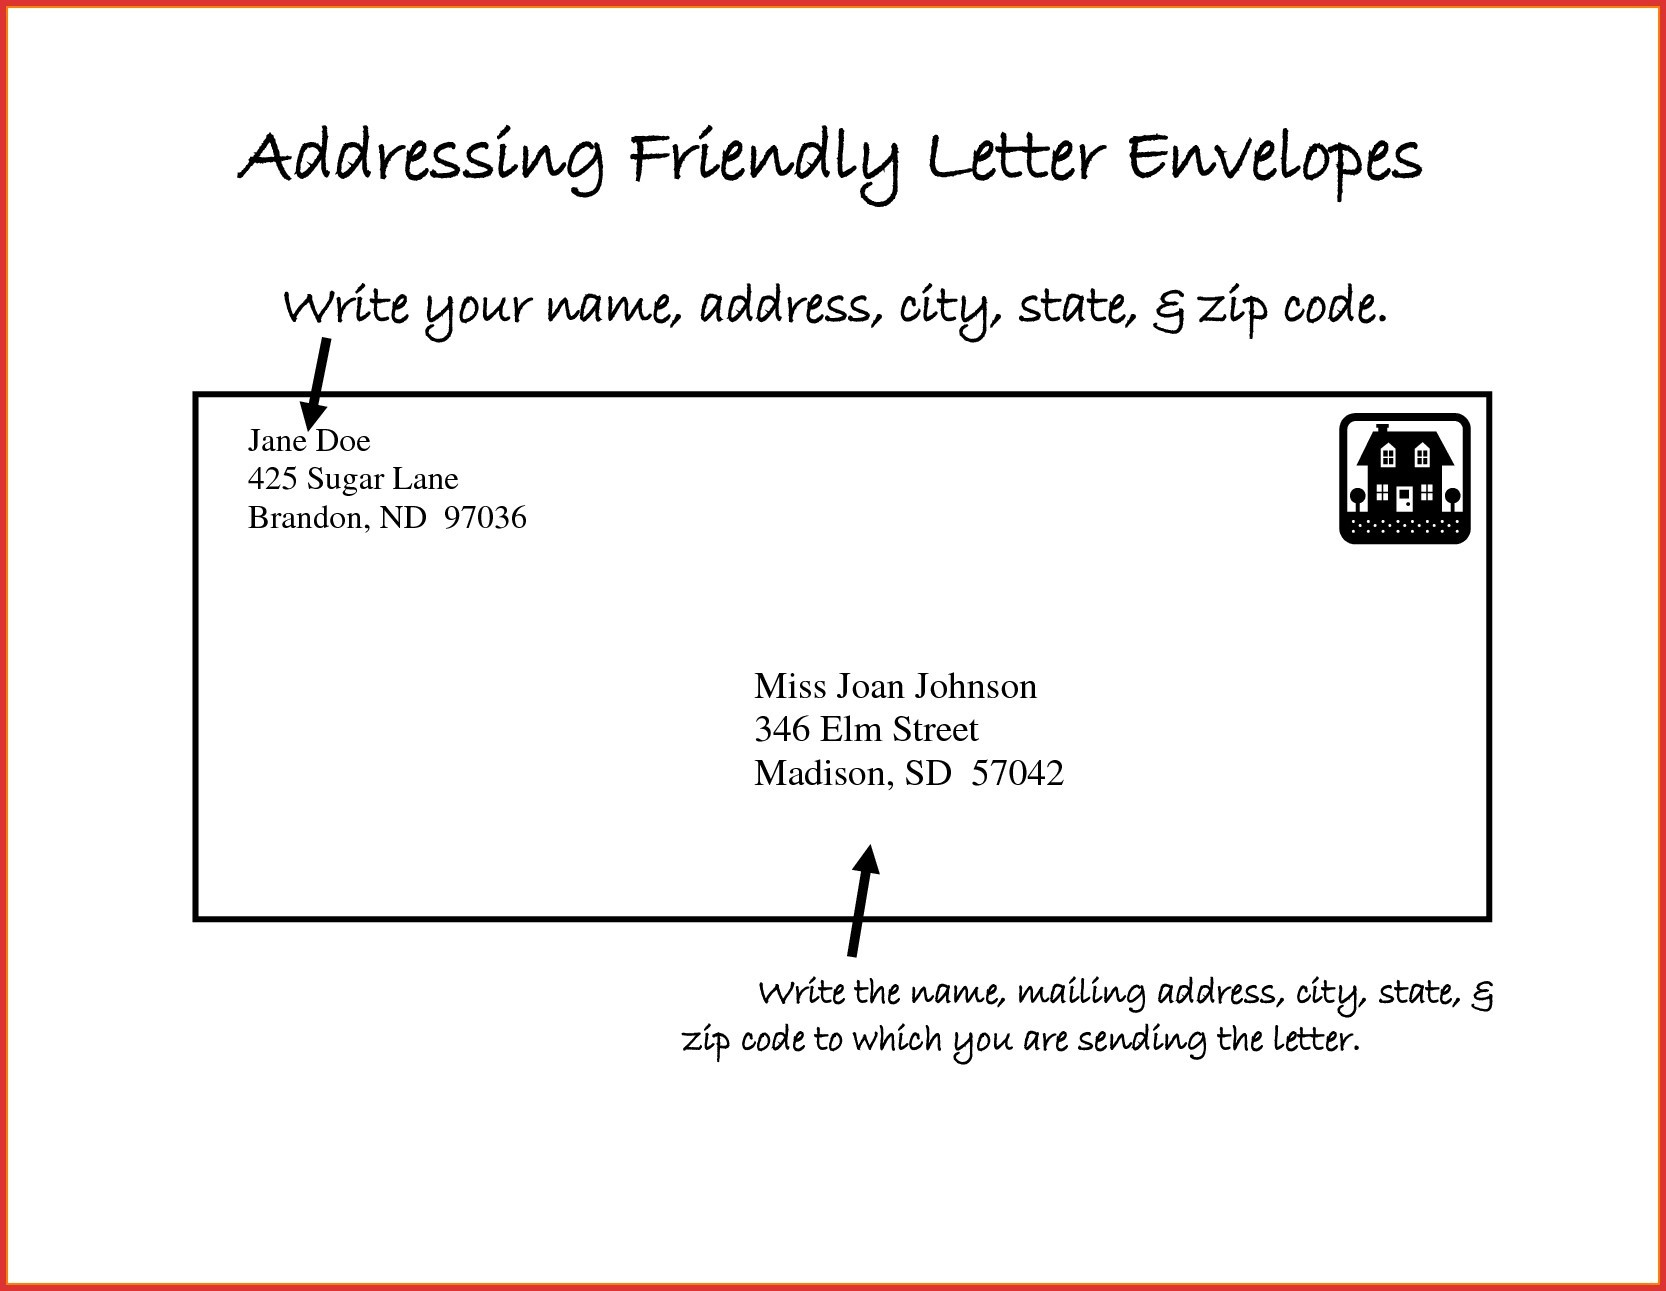 Letter Envelope Address Format Uk New Letter Format Uk Address